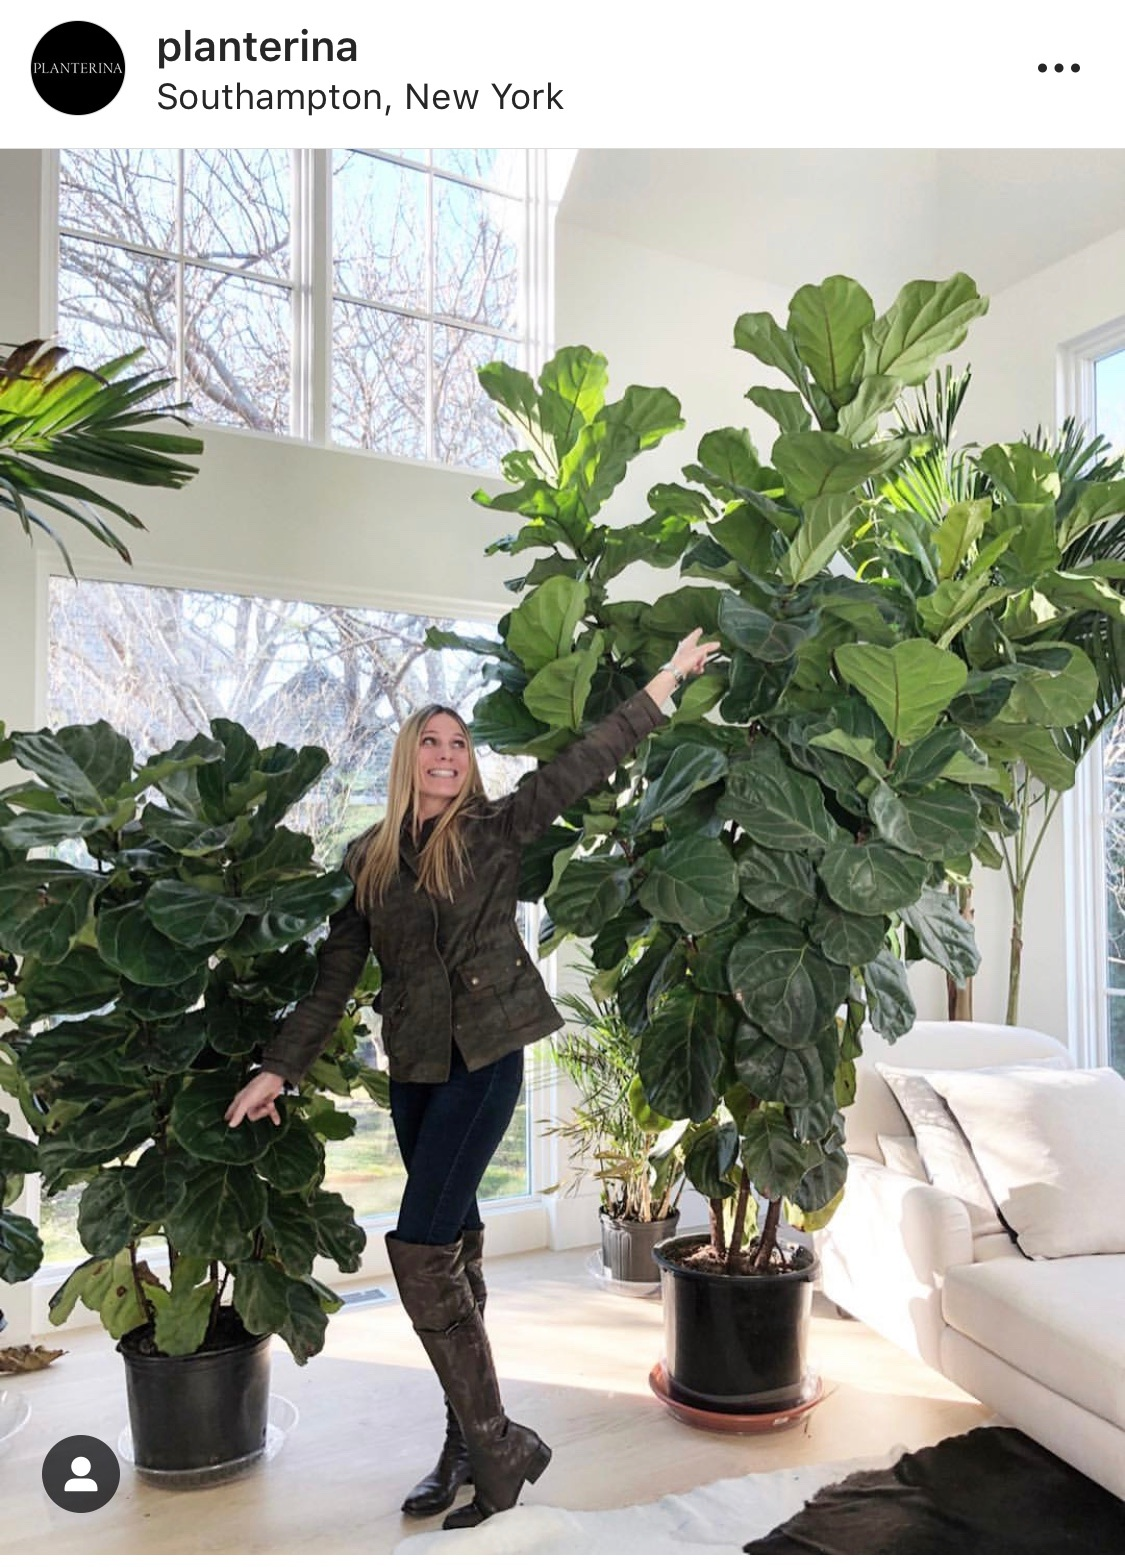 Planterina - Amanda is a plant styling genius, and she is incredibly knowledgeable about plant care. She is the definition of #plantgoals and she basically lives in a greenhouse. Watch her video on plant watering ASAP.@planterina